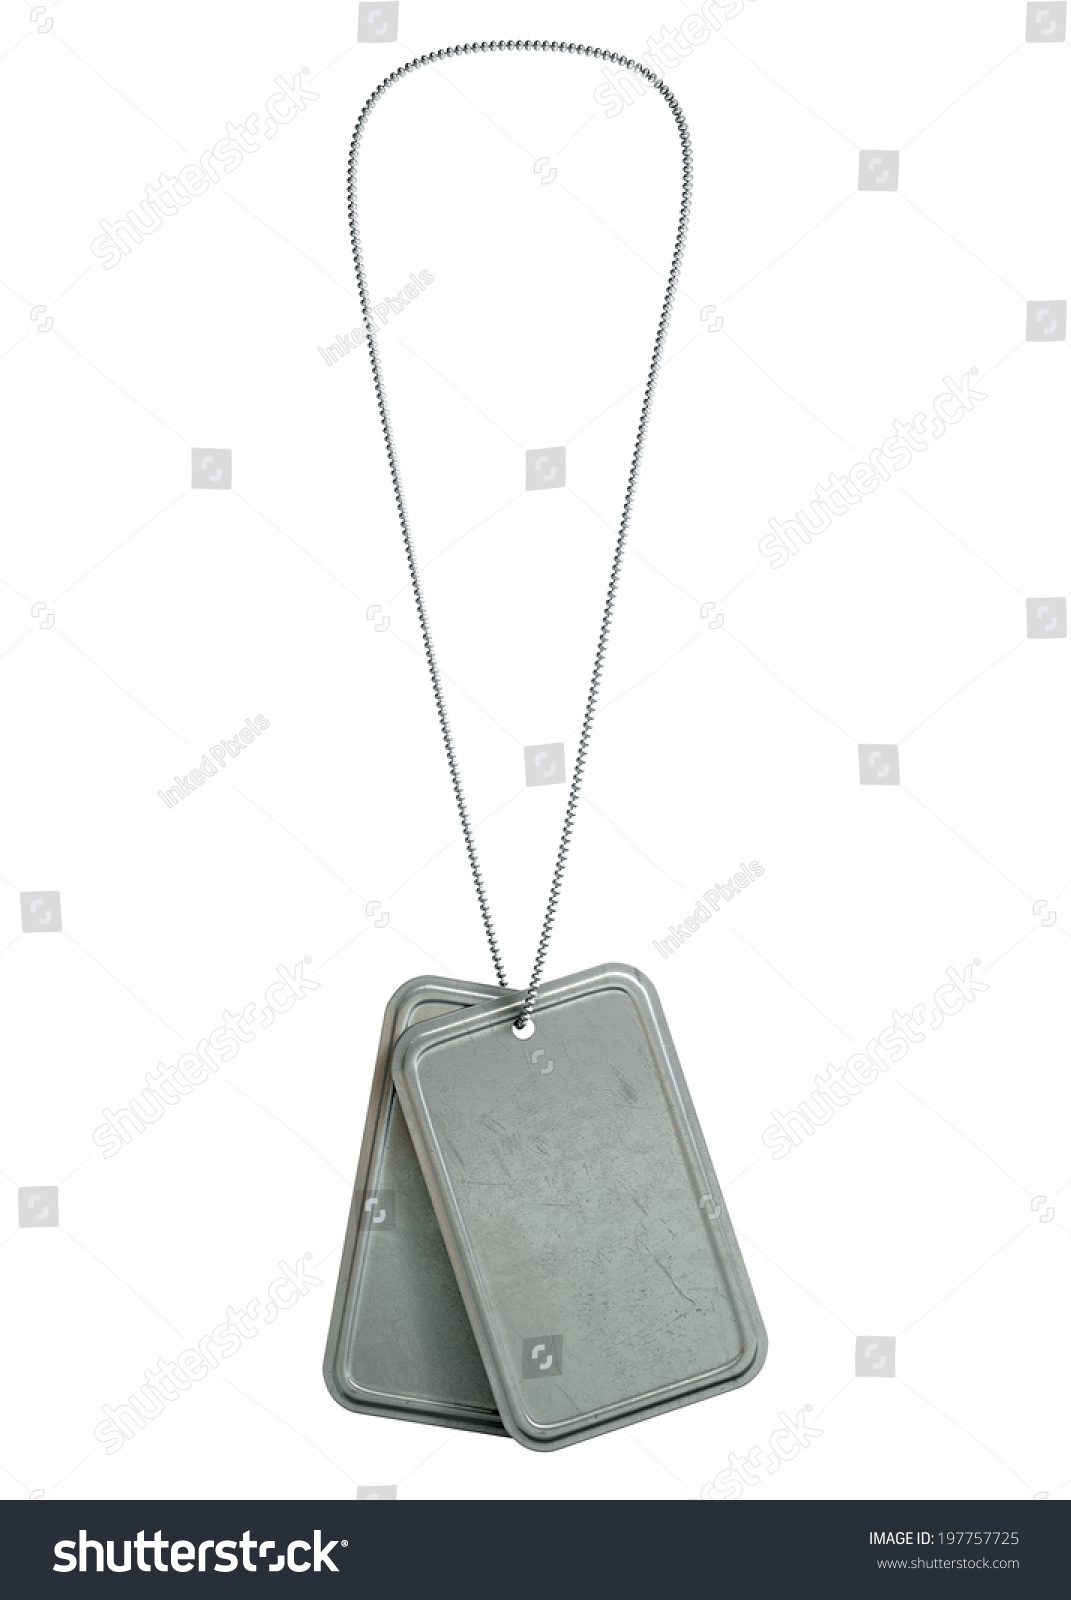 hight resolution of a regular set of blank military dog tag identity tags attached to a chain hanging on